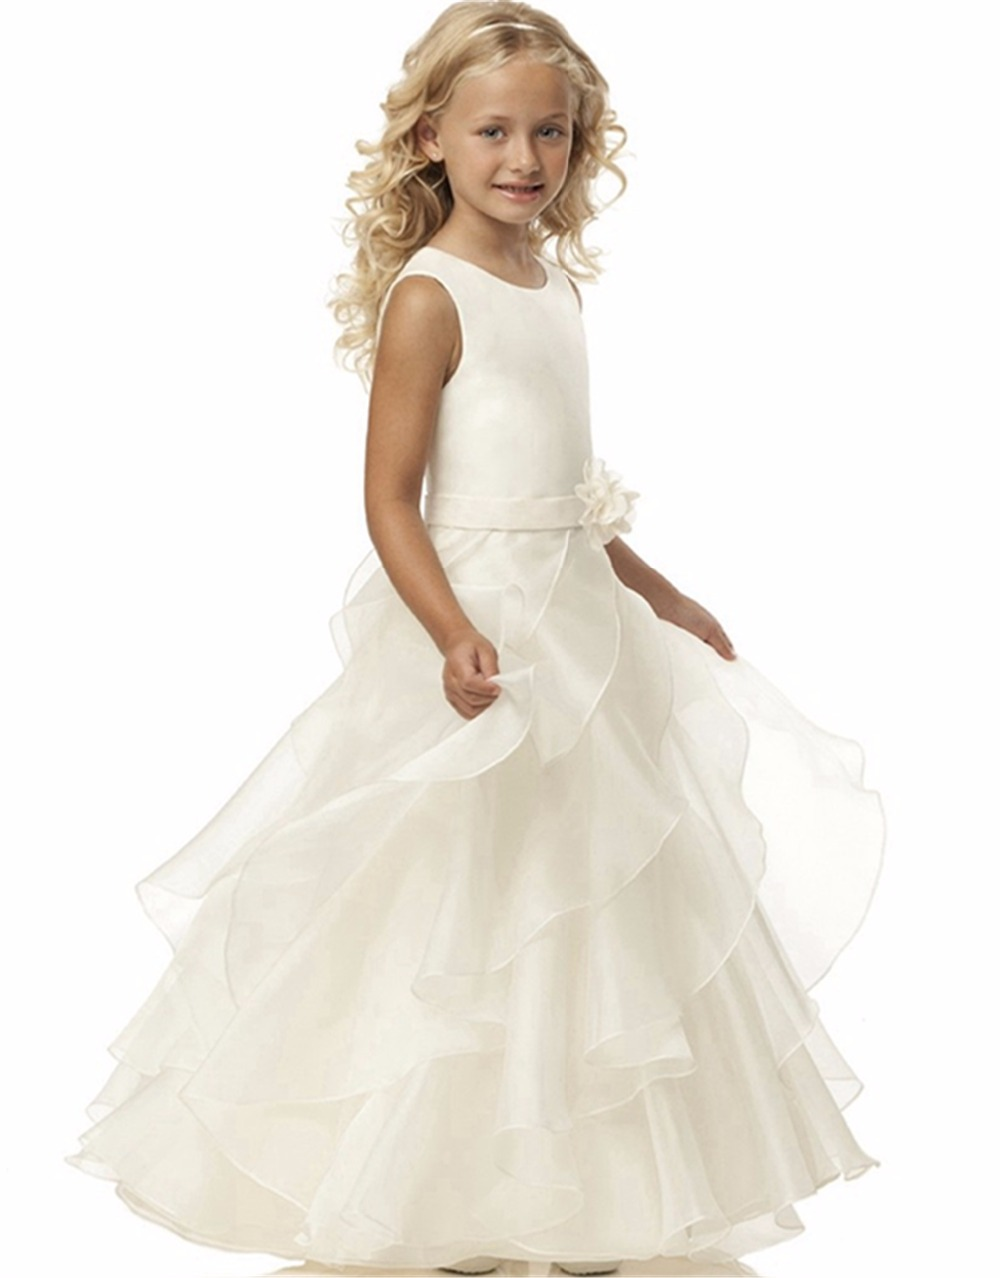 Brand New Flower Girl Dresses White/Ivory Real Party Pageant Communion Dress Little Girls Kids/Children Dress For Wedding